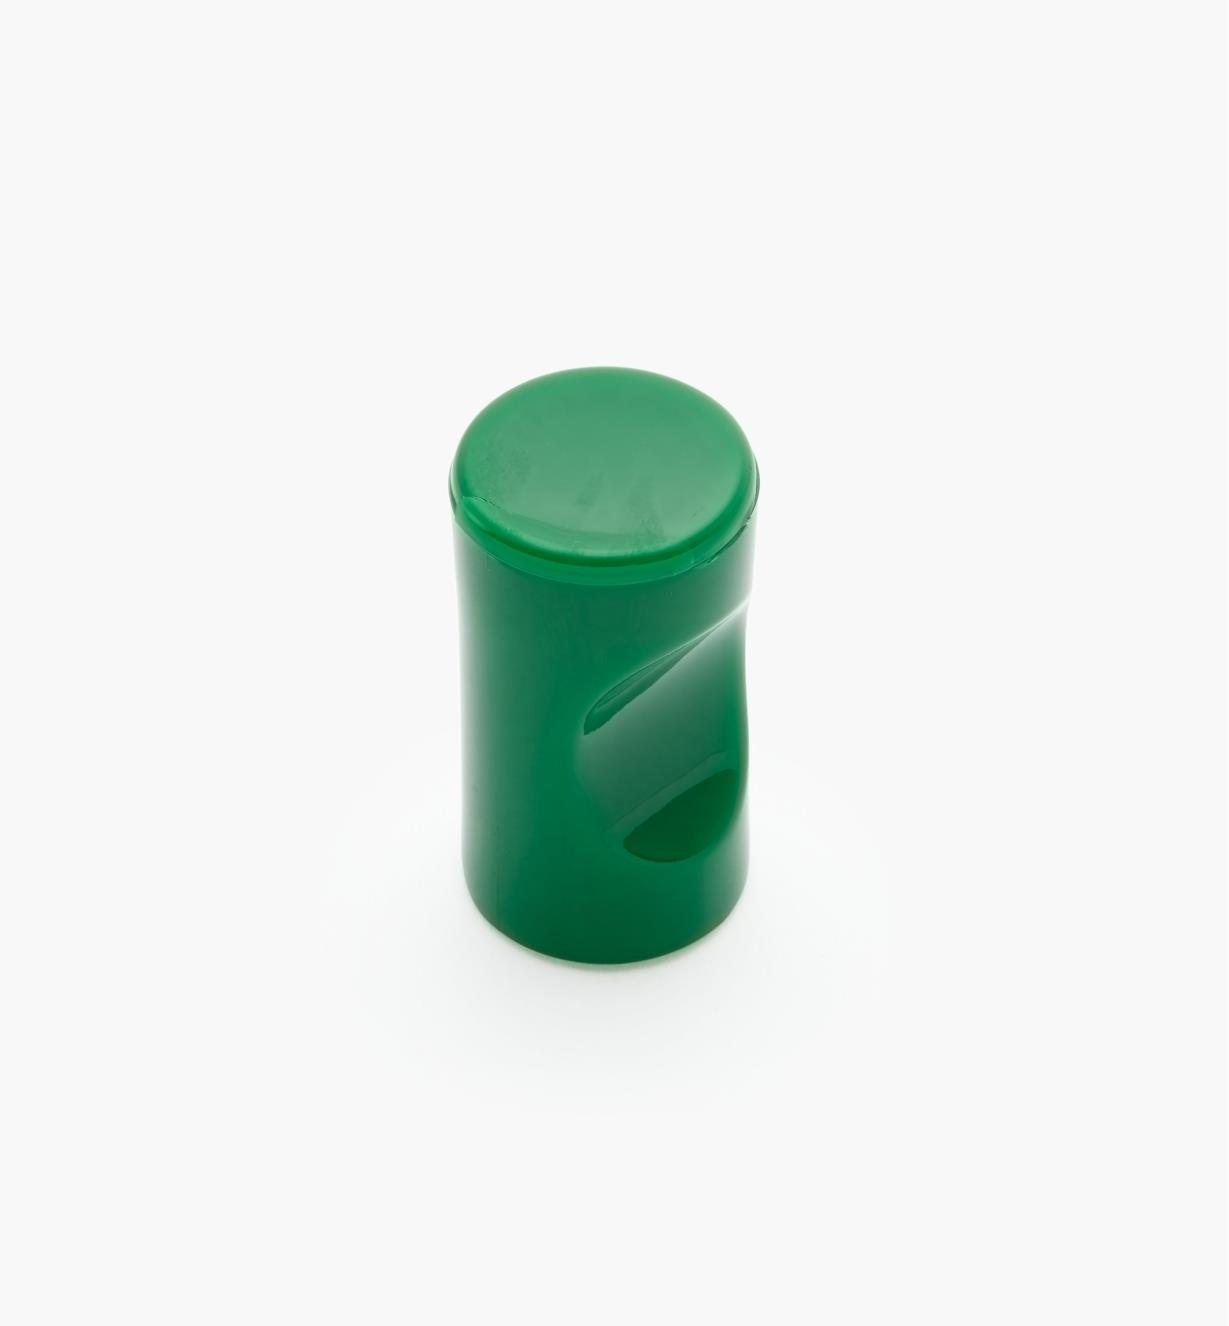 "01W4518 - 13mm x 1 1/8"" Green Notched Pull/Knob"